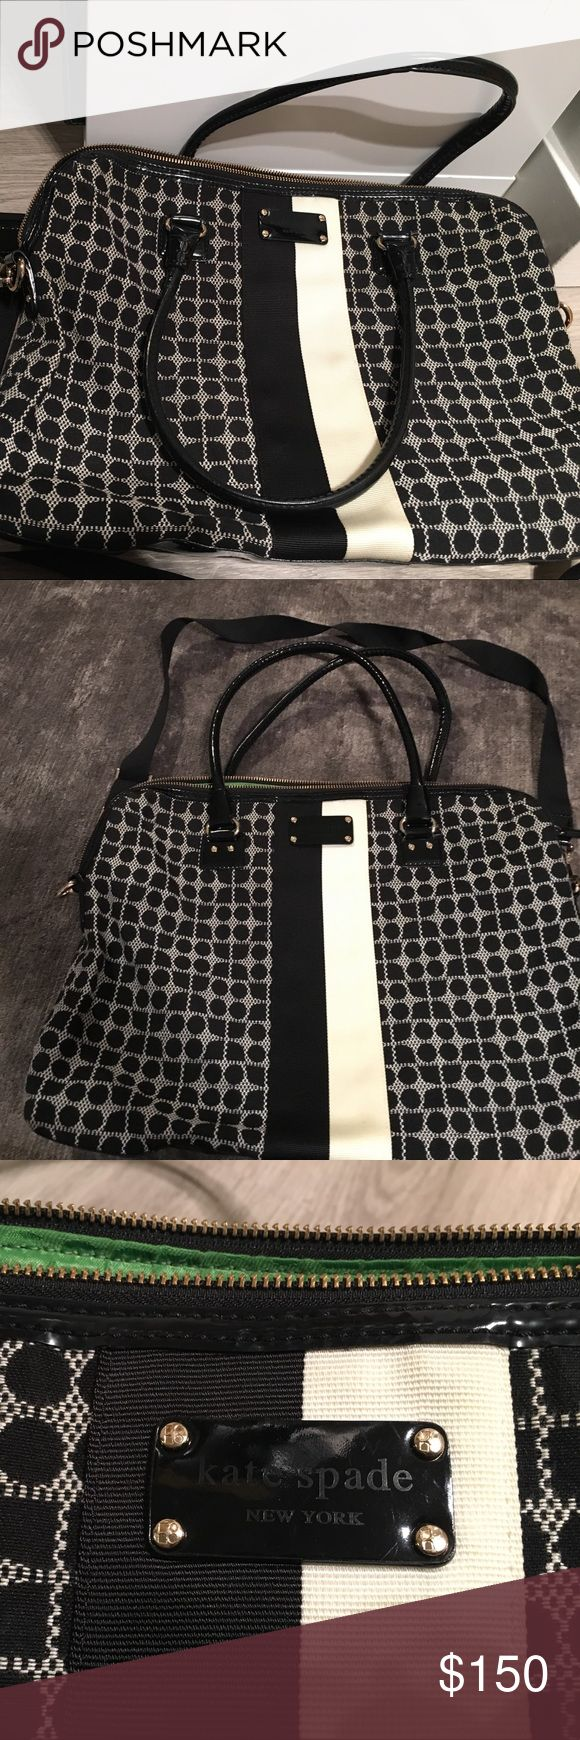 "Kate Spade laptop bag Kate Spade black and white laptop bag. Holds up to 15"" laptop and other items. Perfect for work and going out after. Used only once. kate spade Bags Laptop Bags"